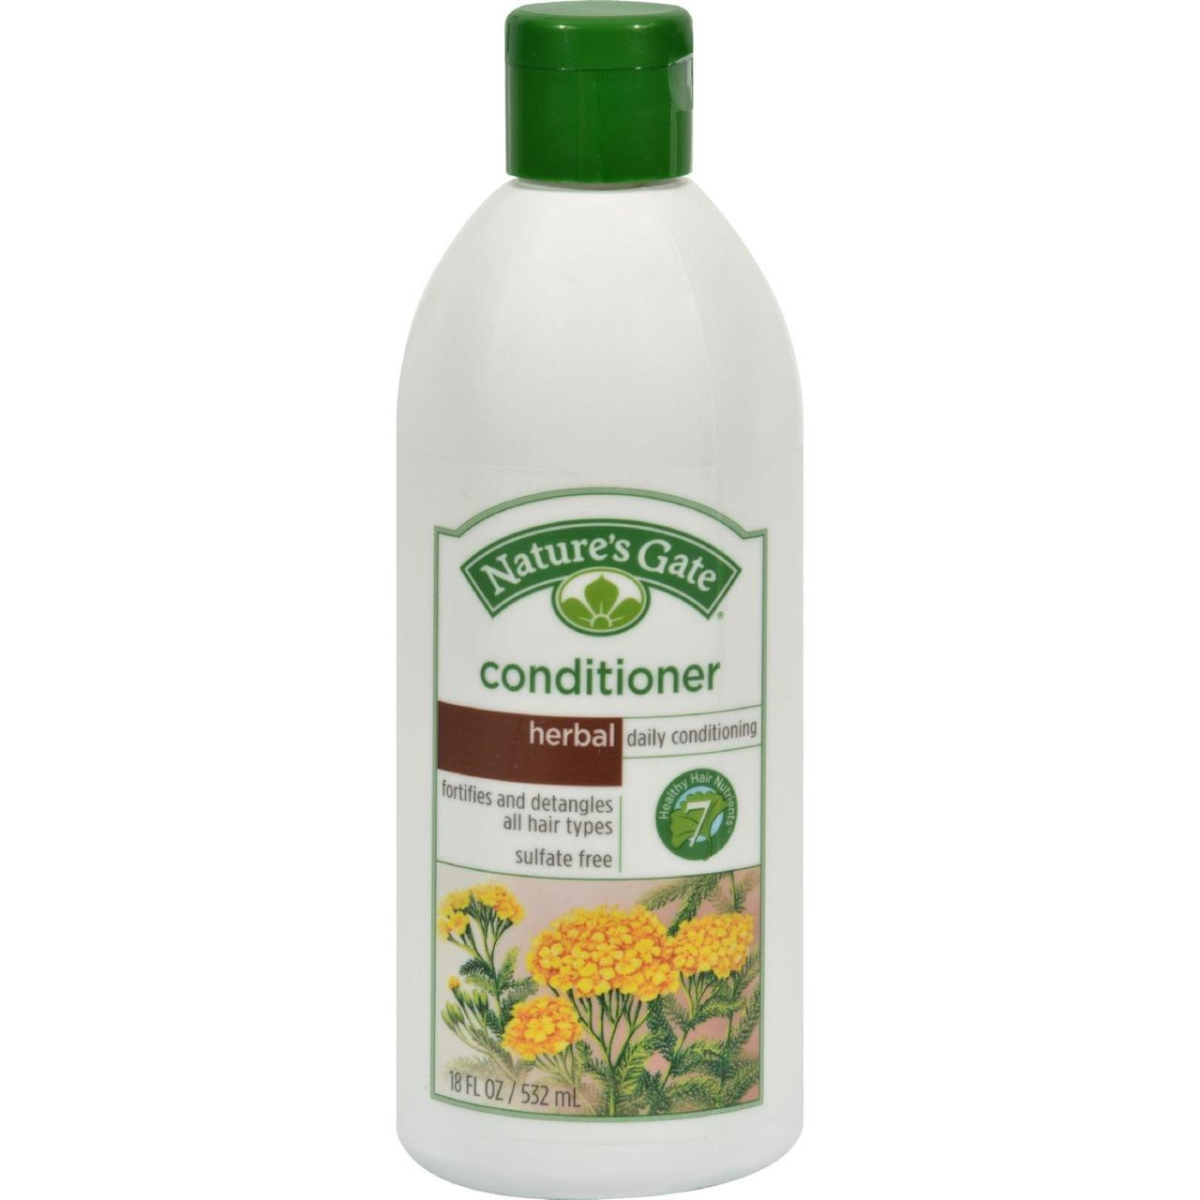 Natures Gate HG0965517 18 oz Daily Conditioning Herbal Conditioner